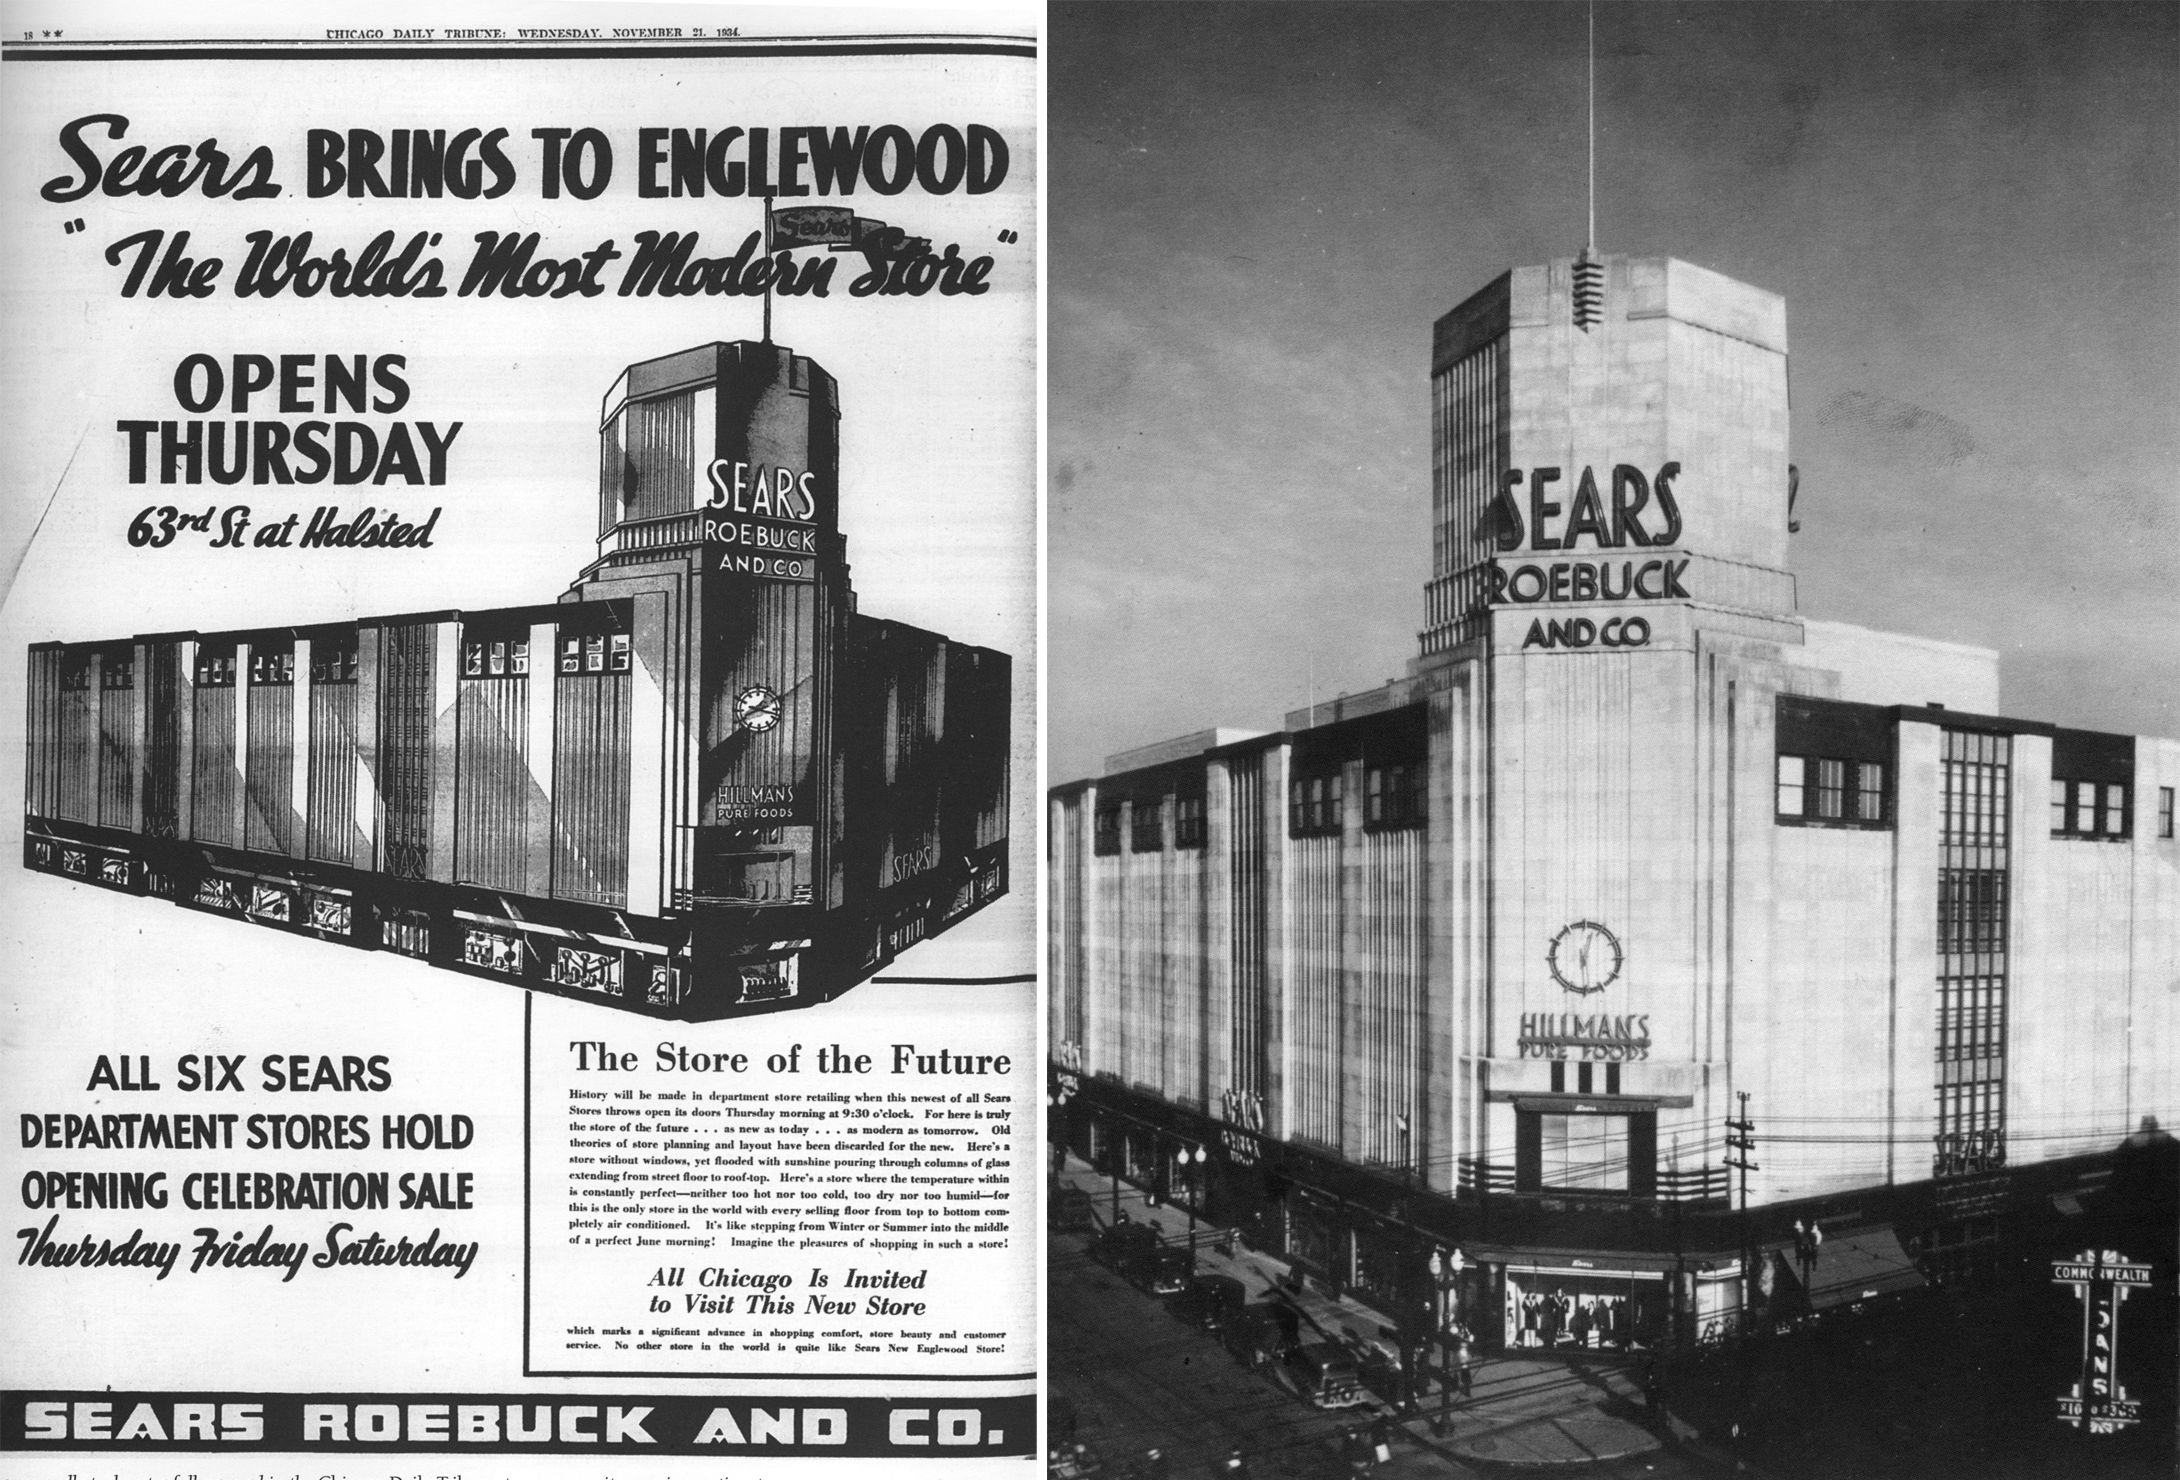 Description of Sears Inglewood Store that had no windows.